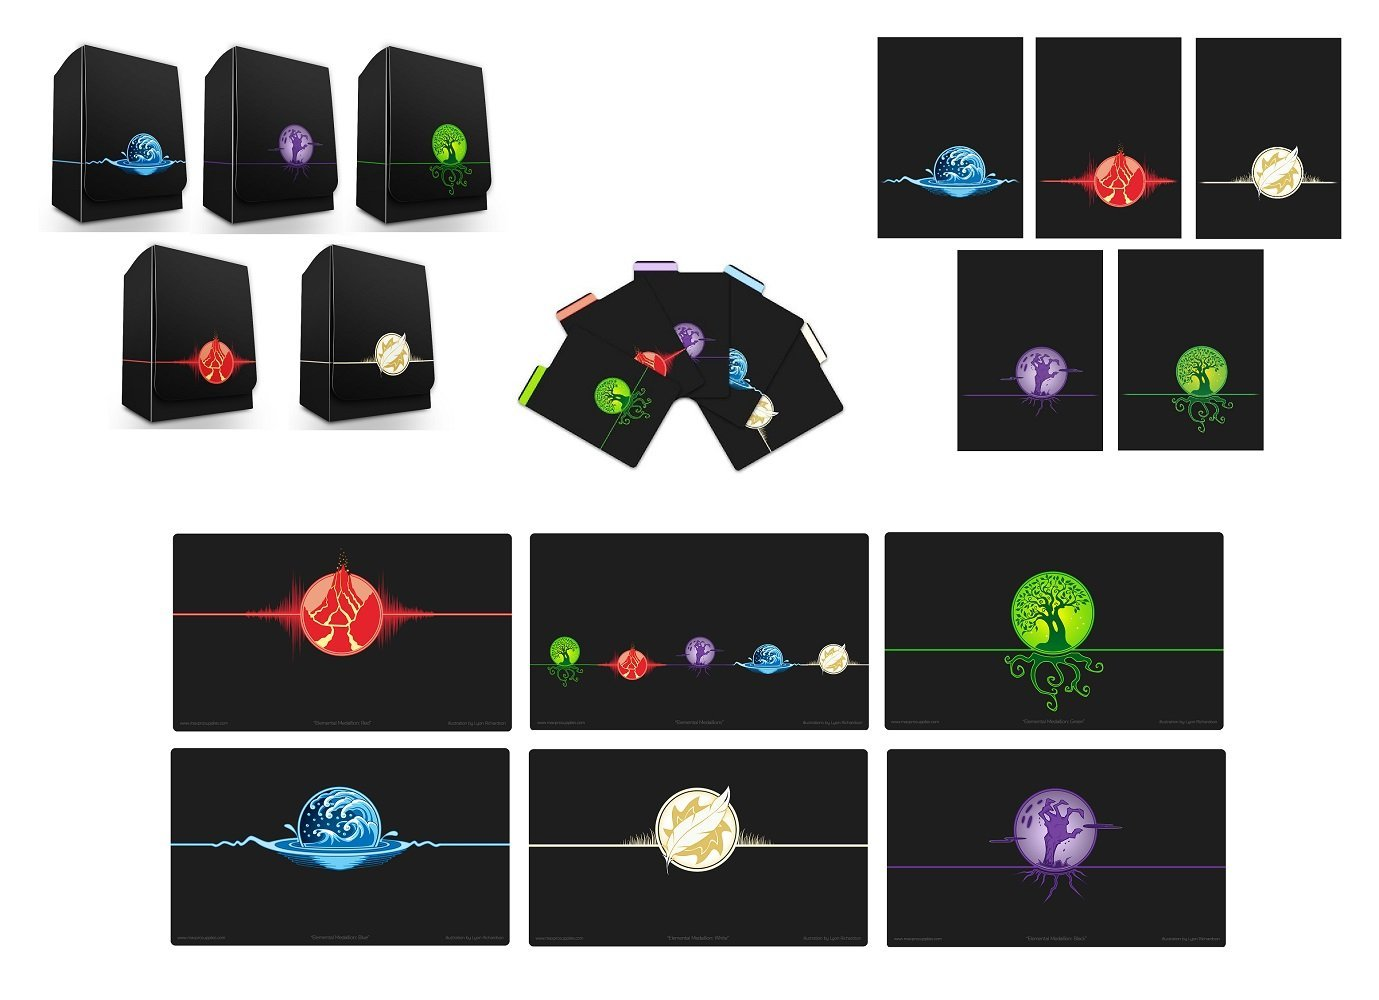 Max-Pro 6 Playmats + ALL 5 ICONIC ELEMENTAL Symbol DECK BOXES Divider Set + 500 SLEEVES ( 100 of each design) fits MTG Mana FORCE OF WILL Pokemon